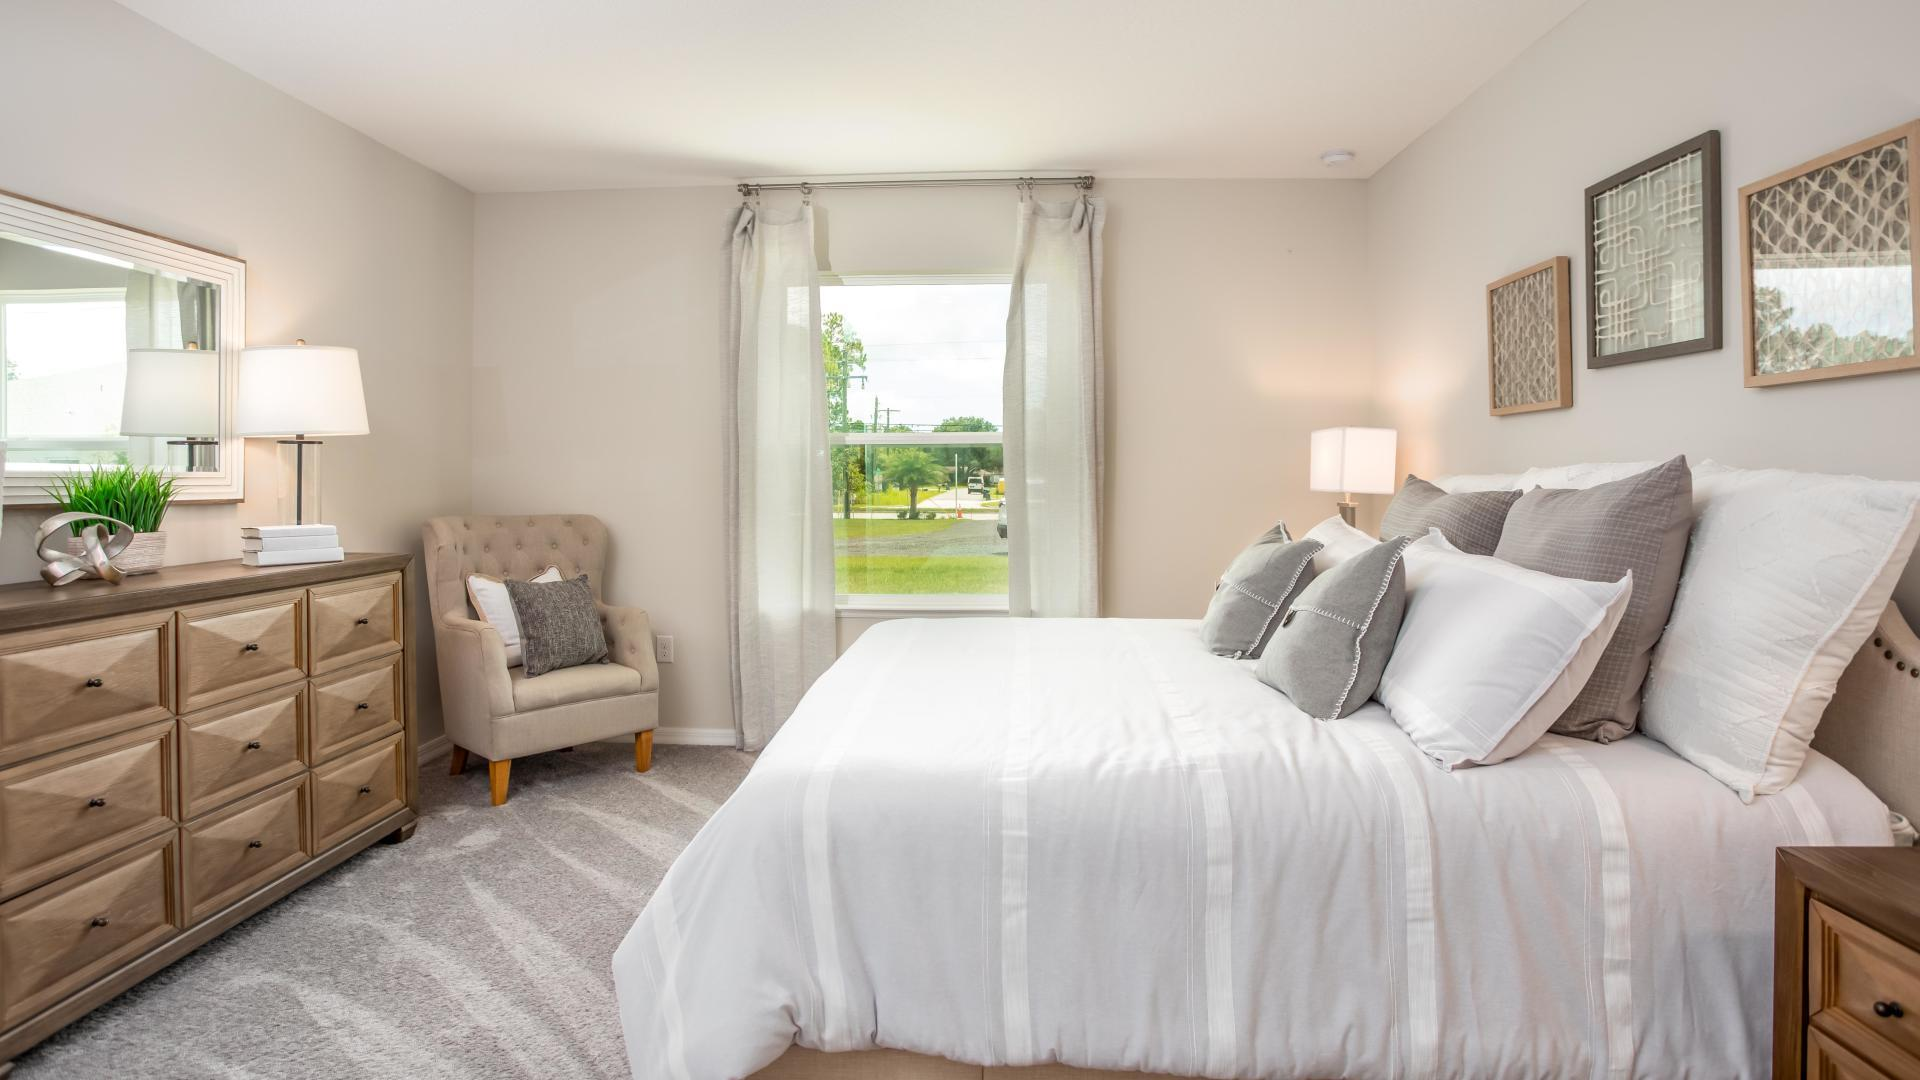 Bedroom featured in the Willow By Maronda Homes in Melbourne, FL